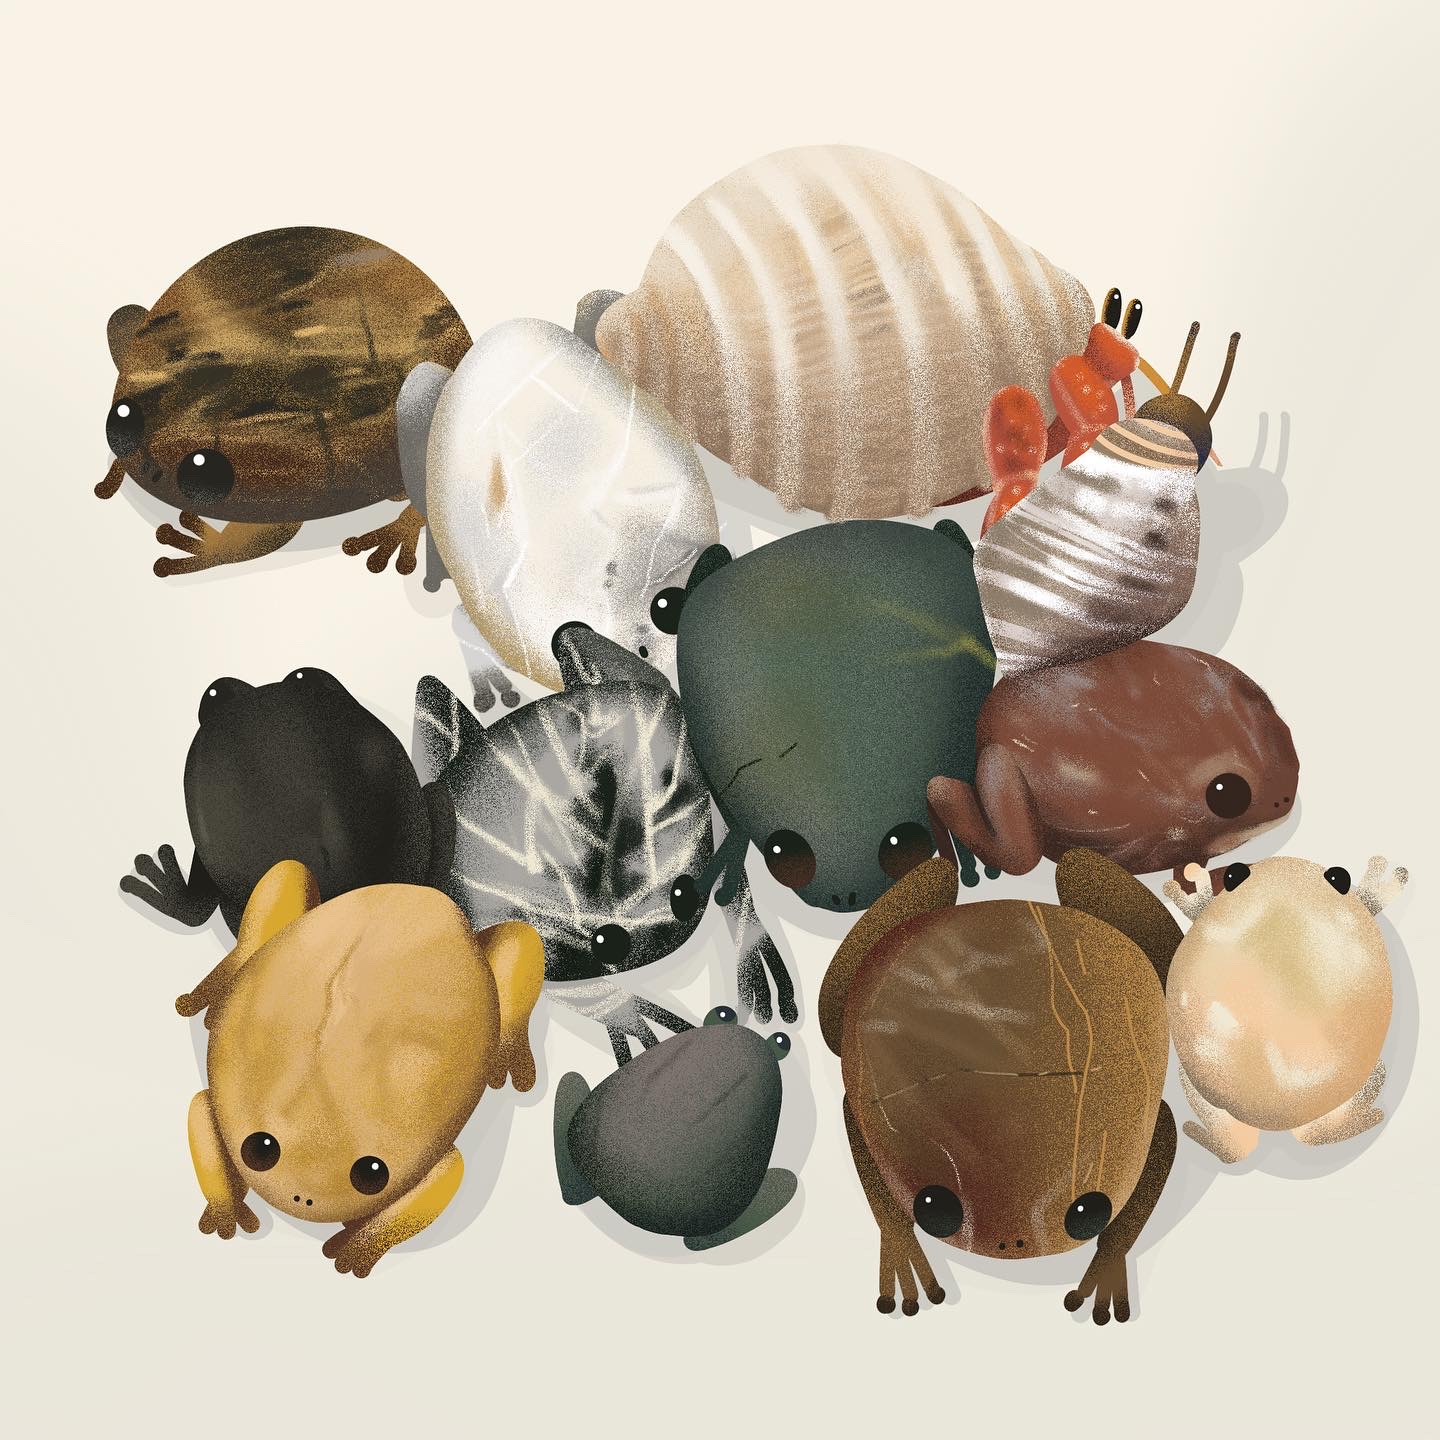 An illustration of frogs based on the colours and shapes of pebbles collected from the beach.